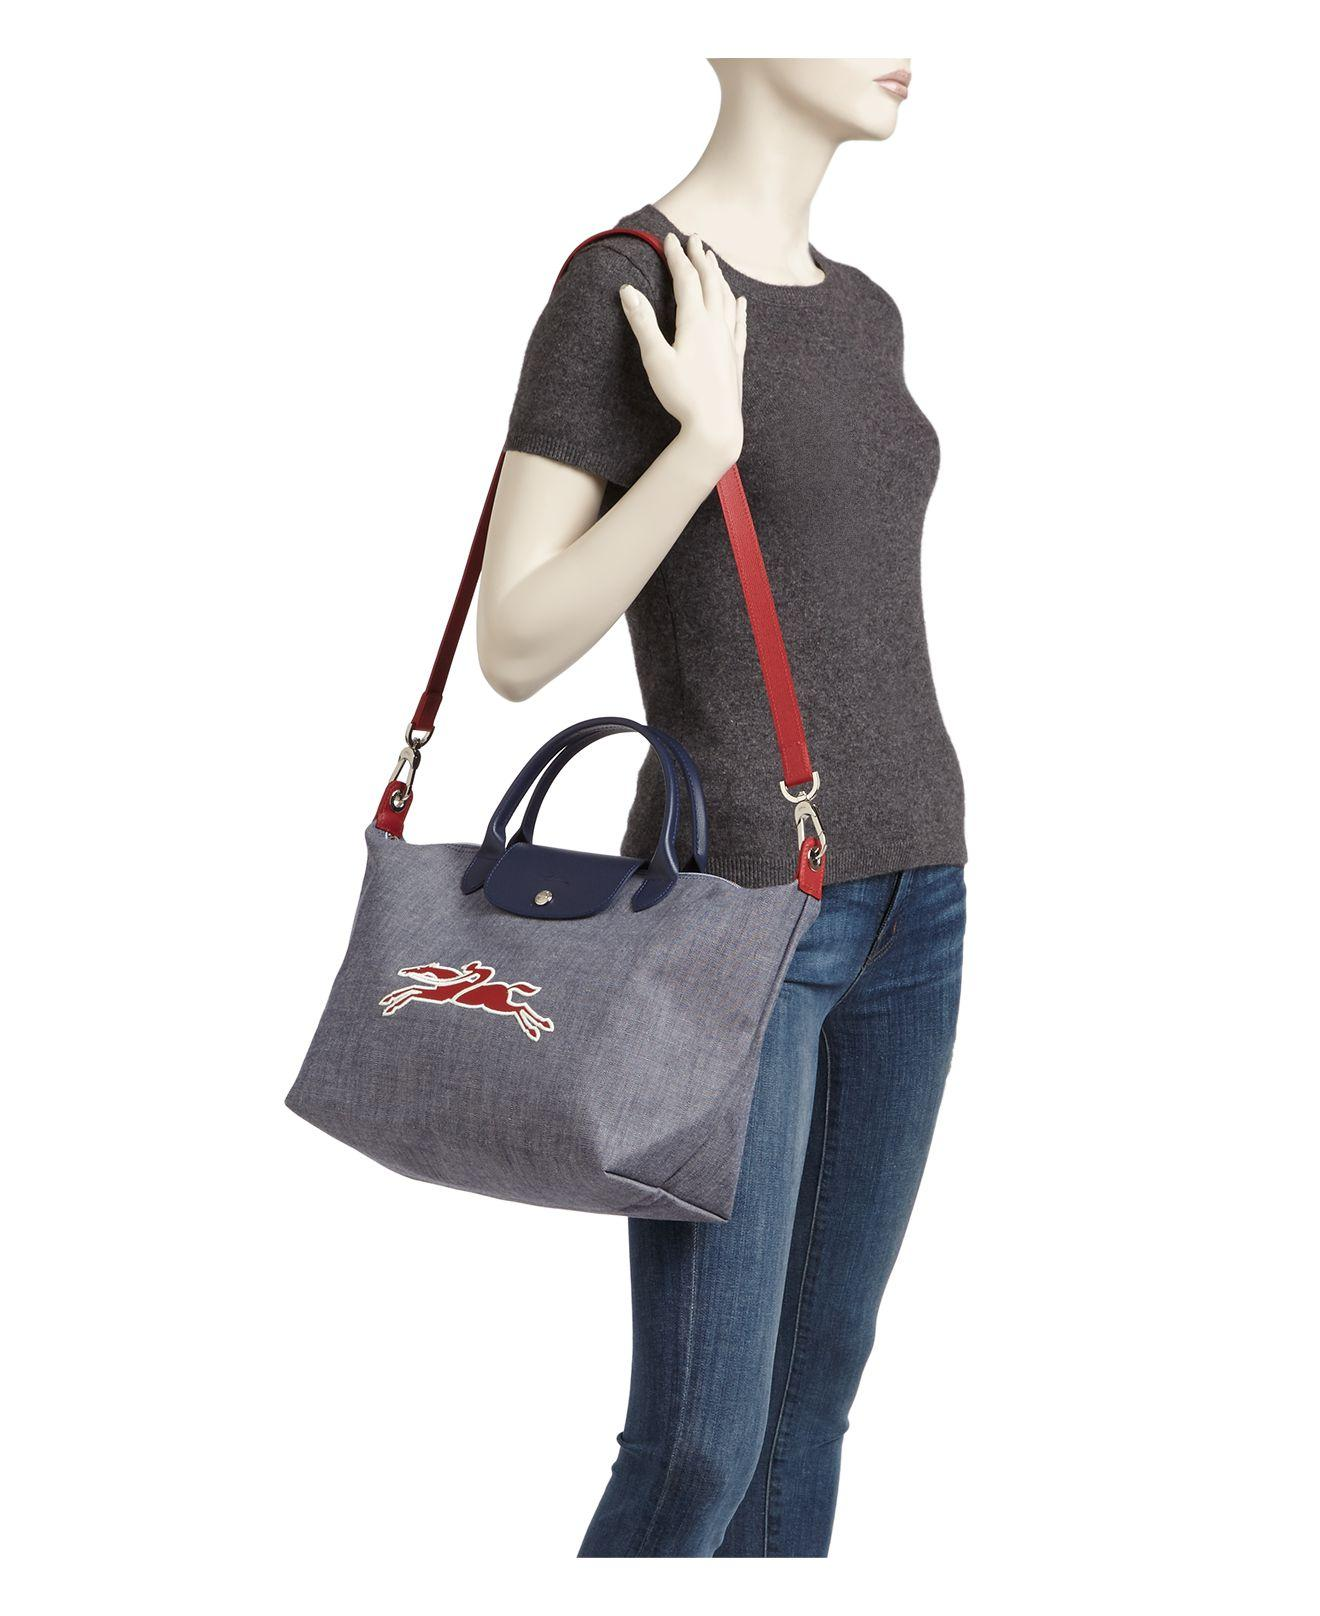 51f2a3a521e Lyst - Longchamp Le Pliage On The Road Medium Satchel in Blue